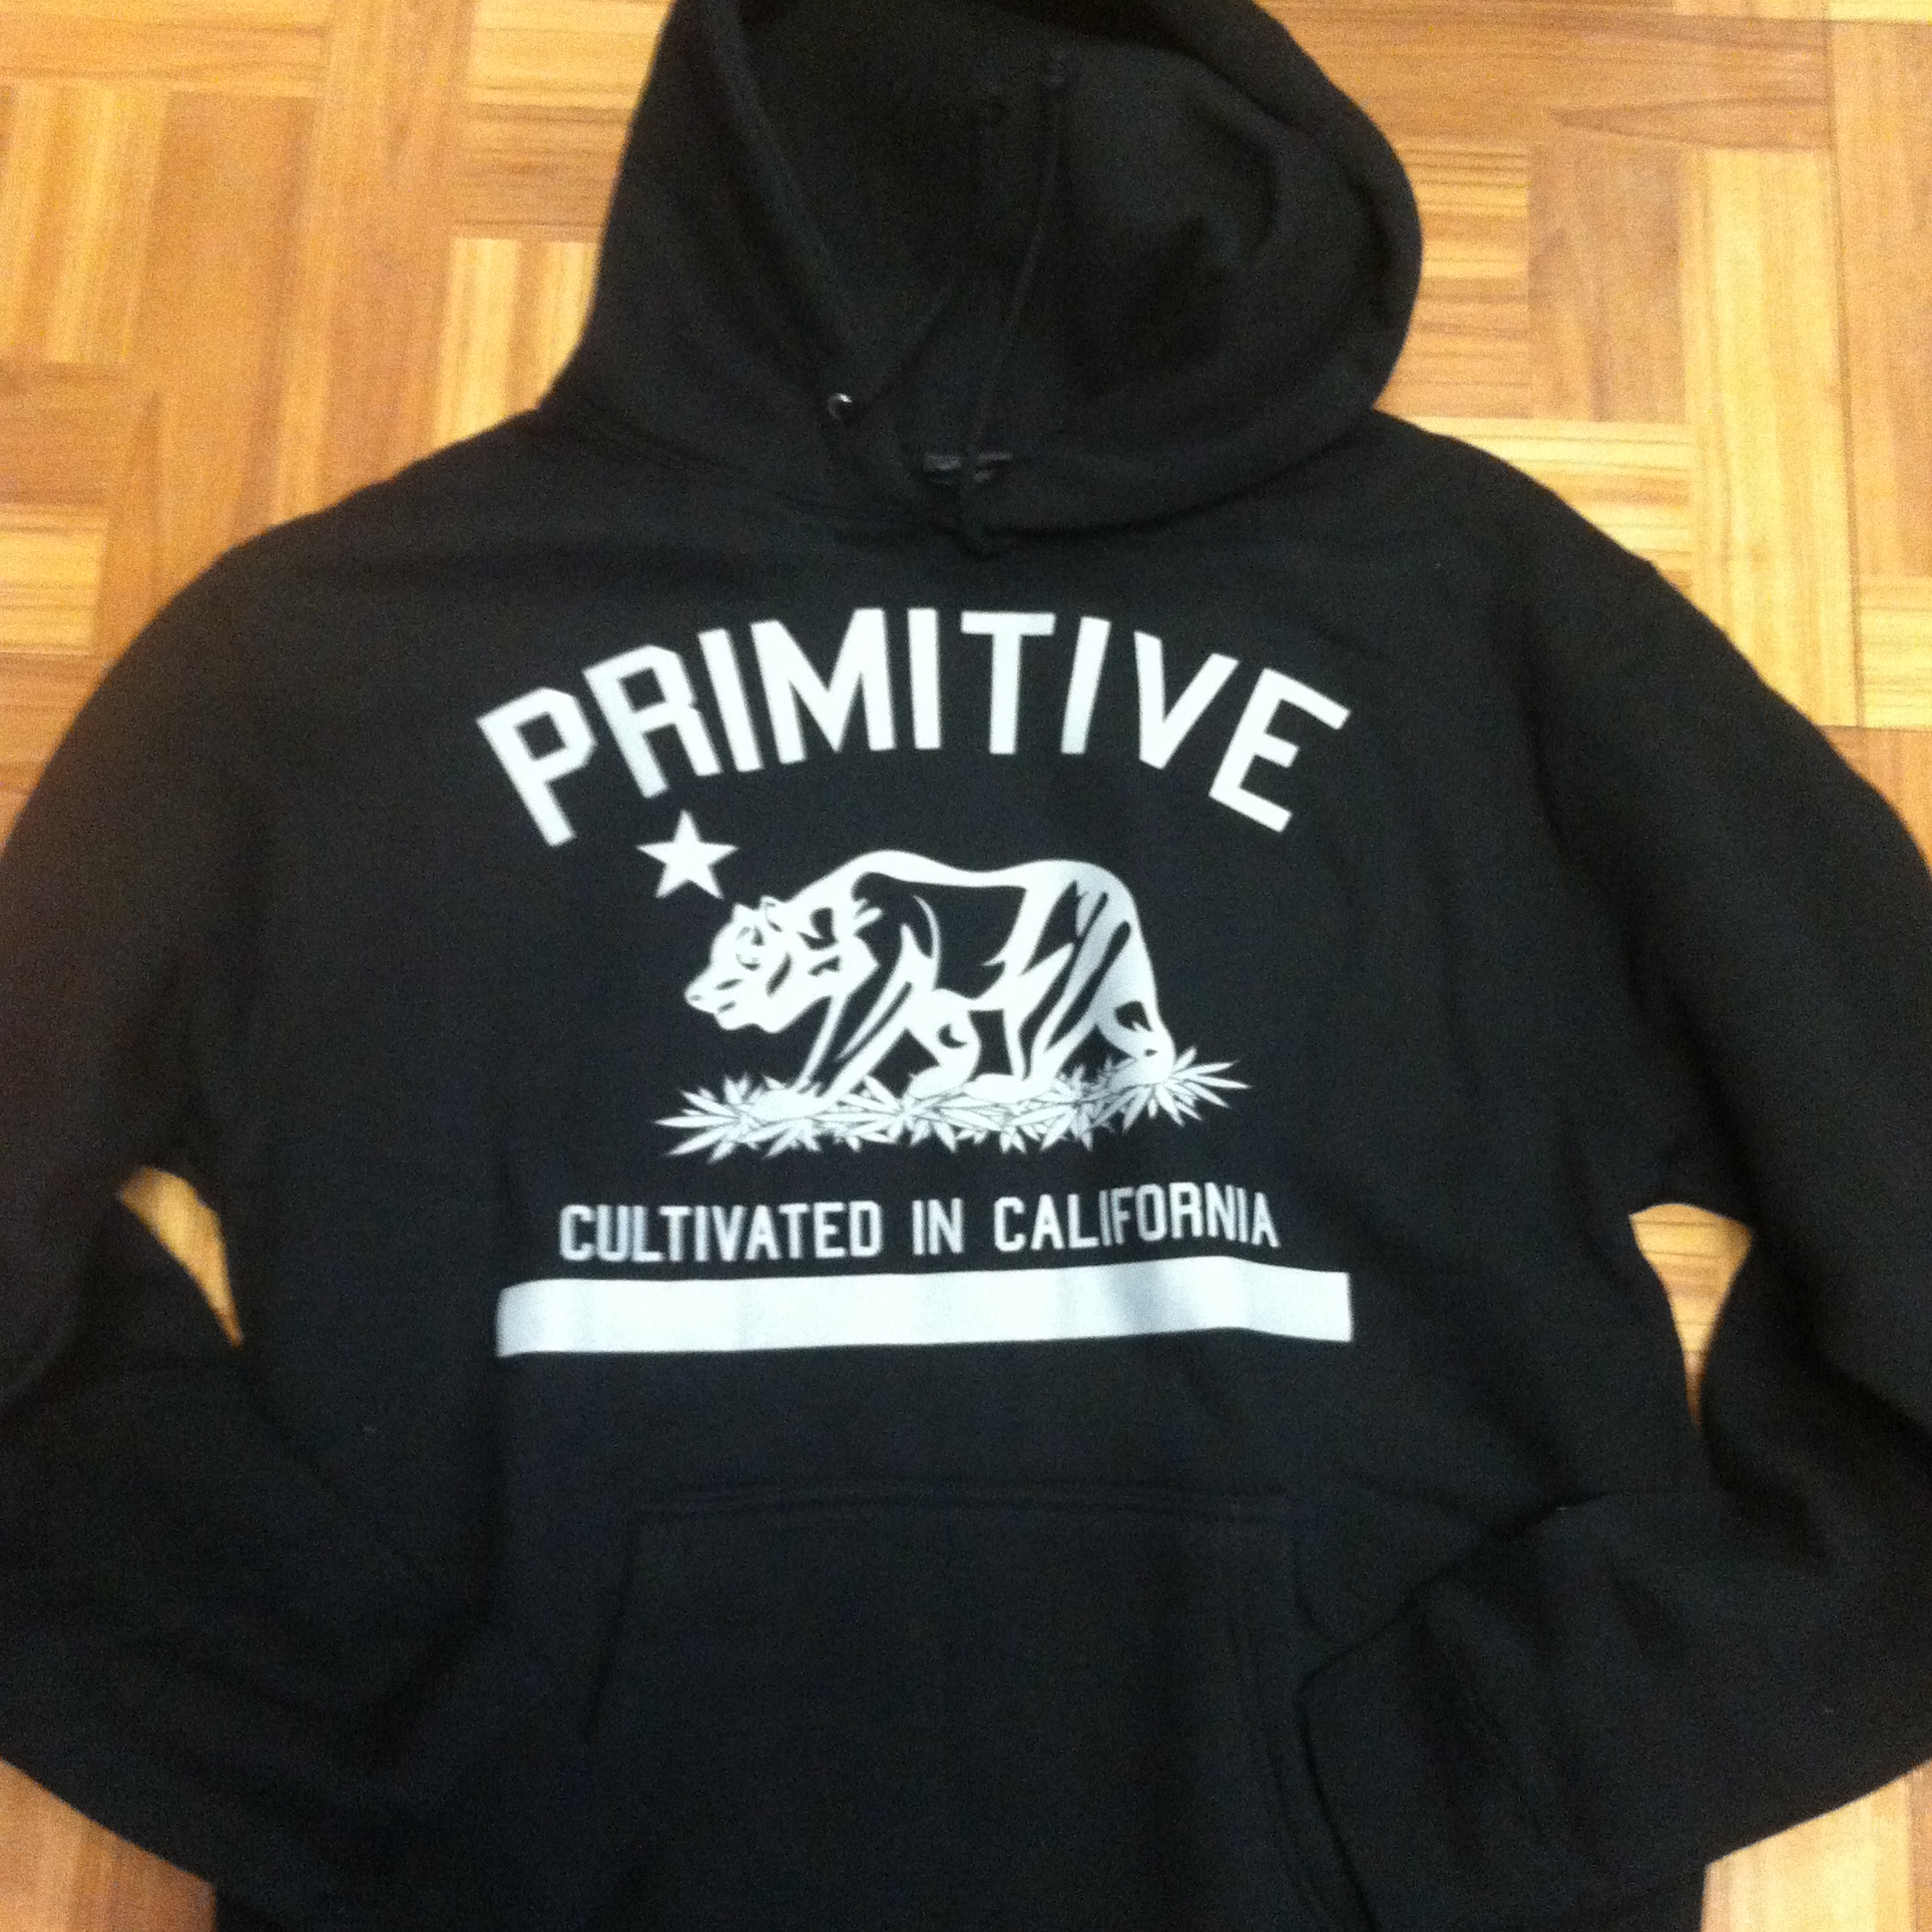 the gallery for gt primitive apparel logo wallpaper